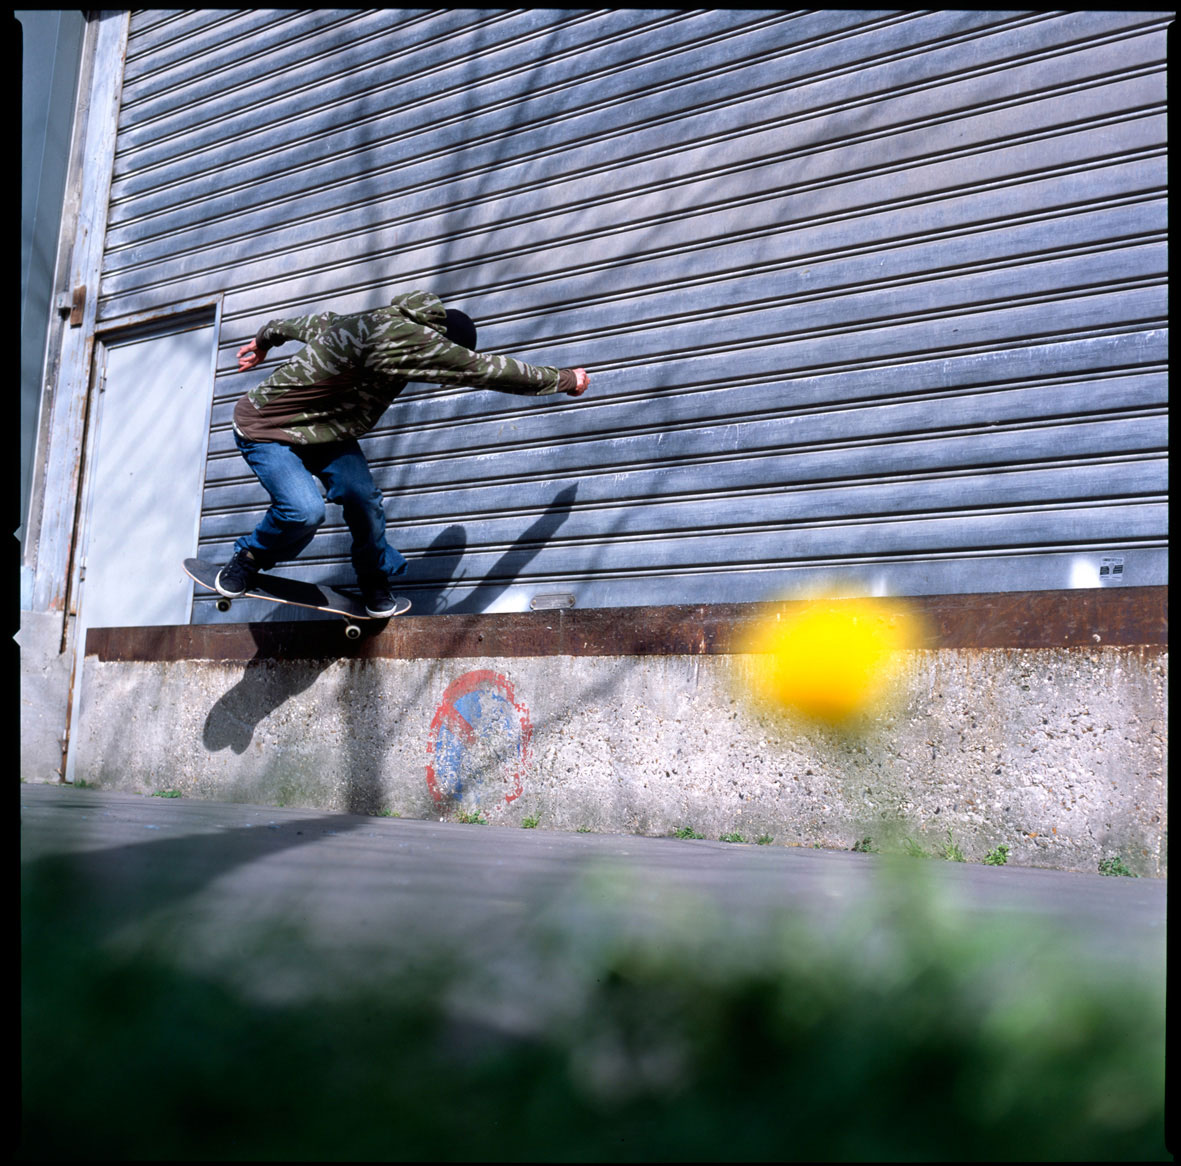 180 back fakie nosegrind - photo : Benoit Copin